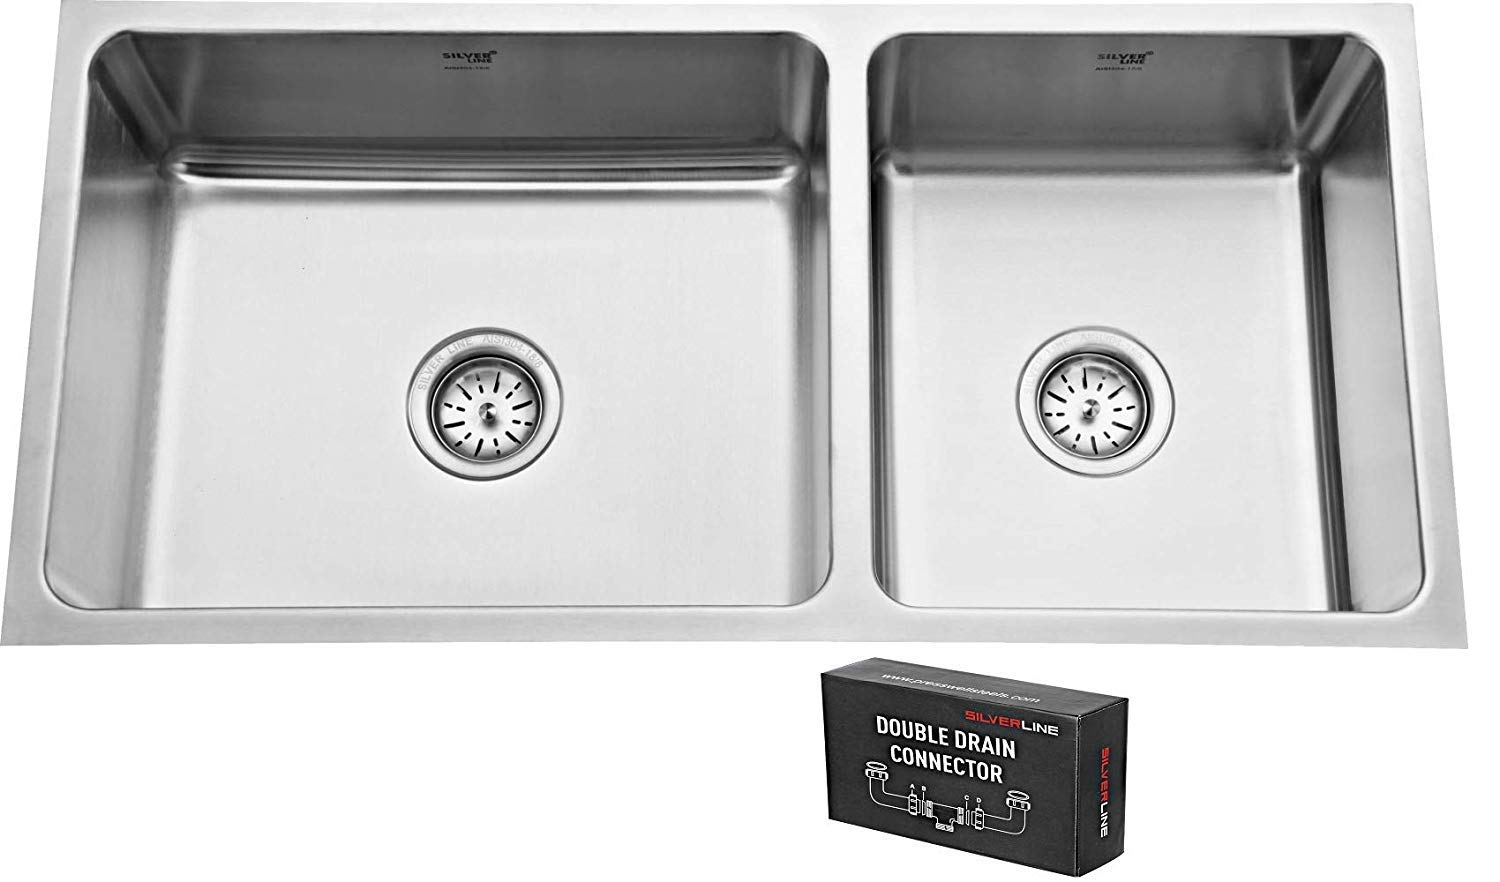 Silver Line Double Bowl Sink